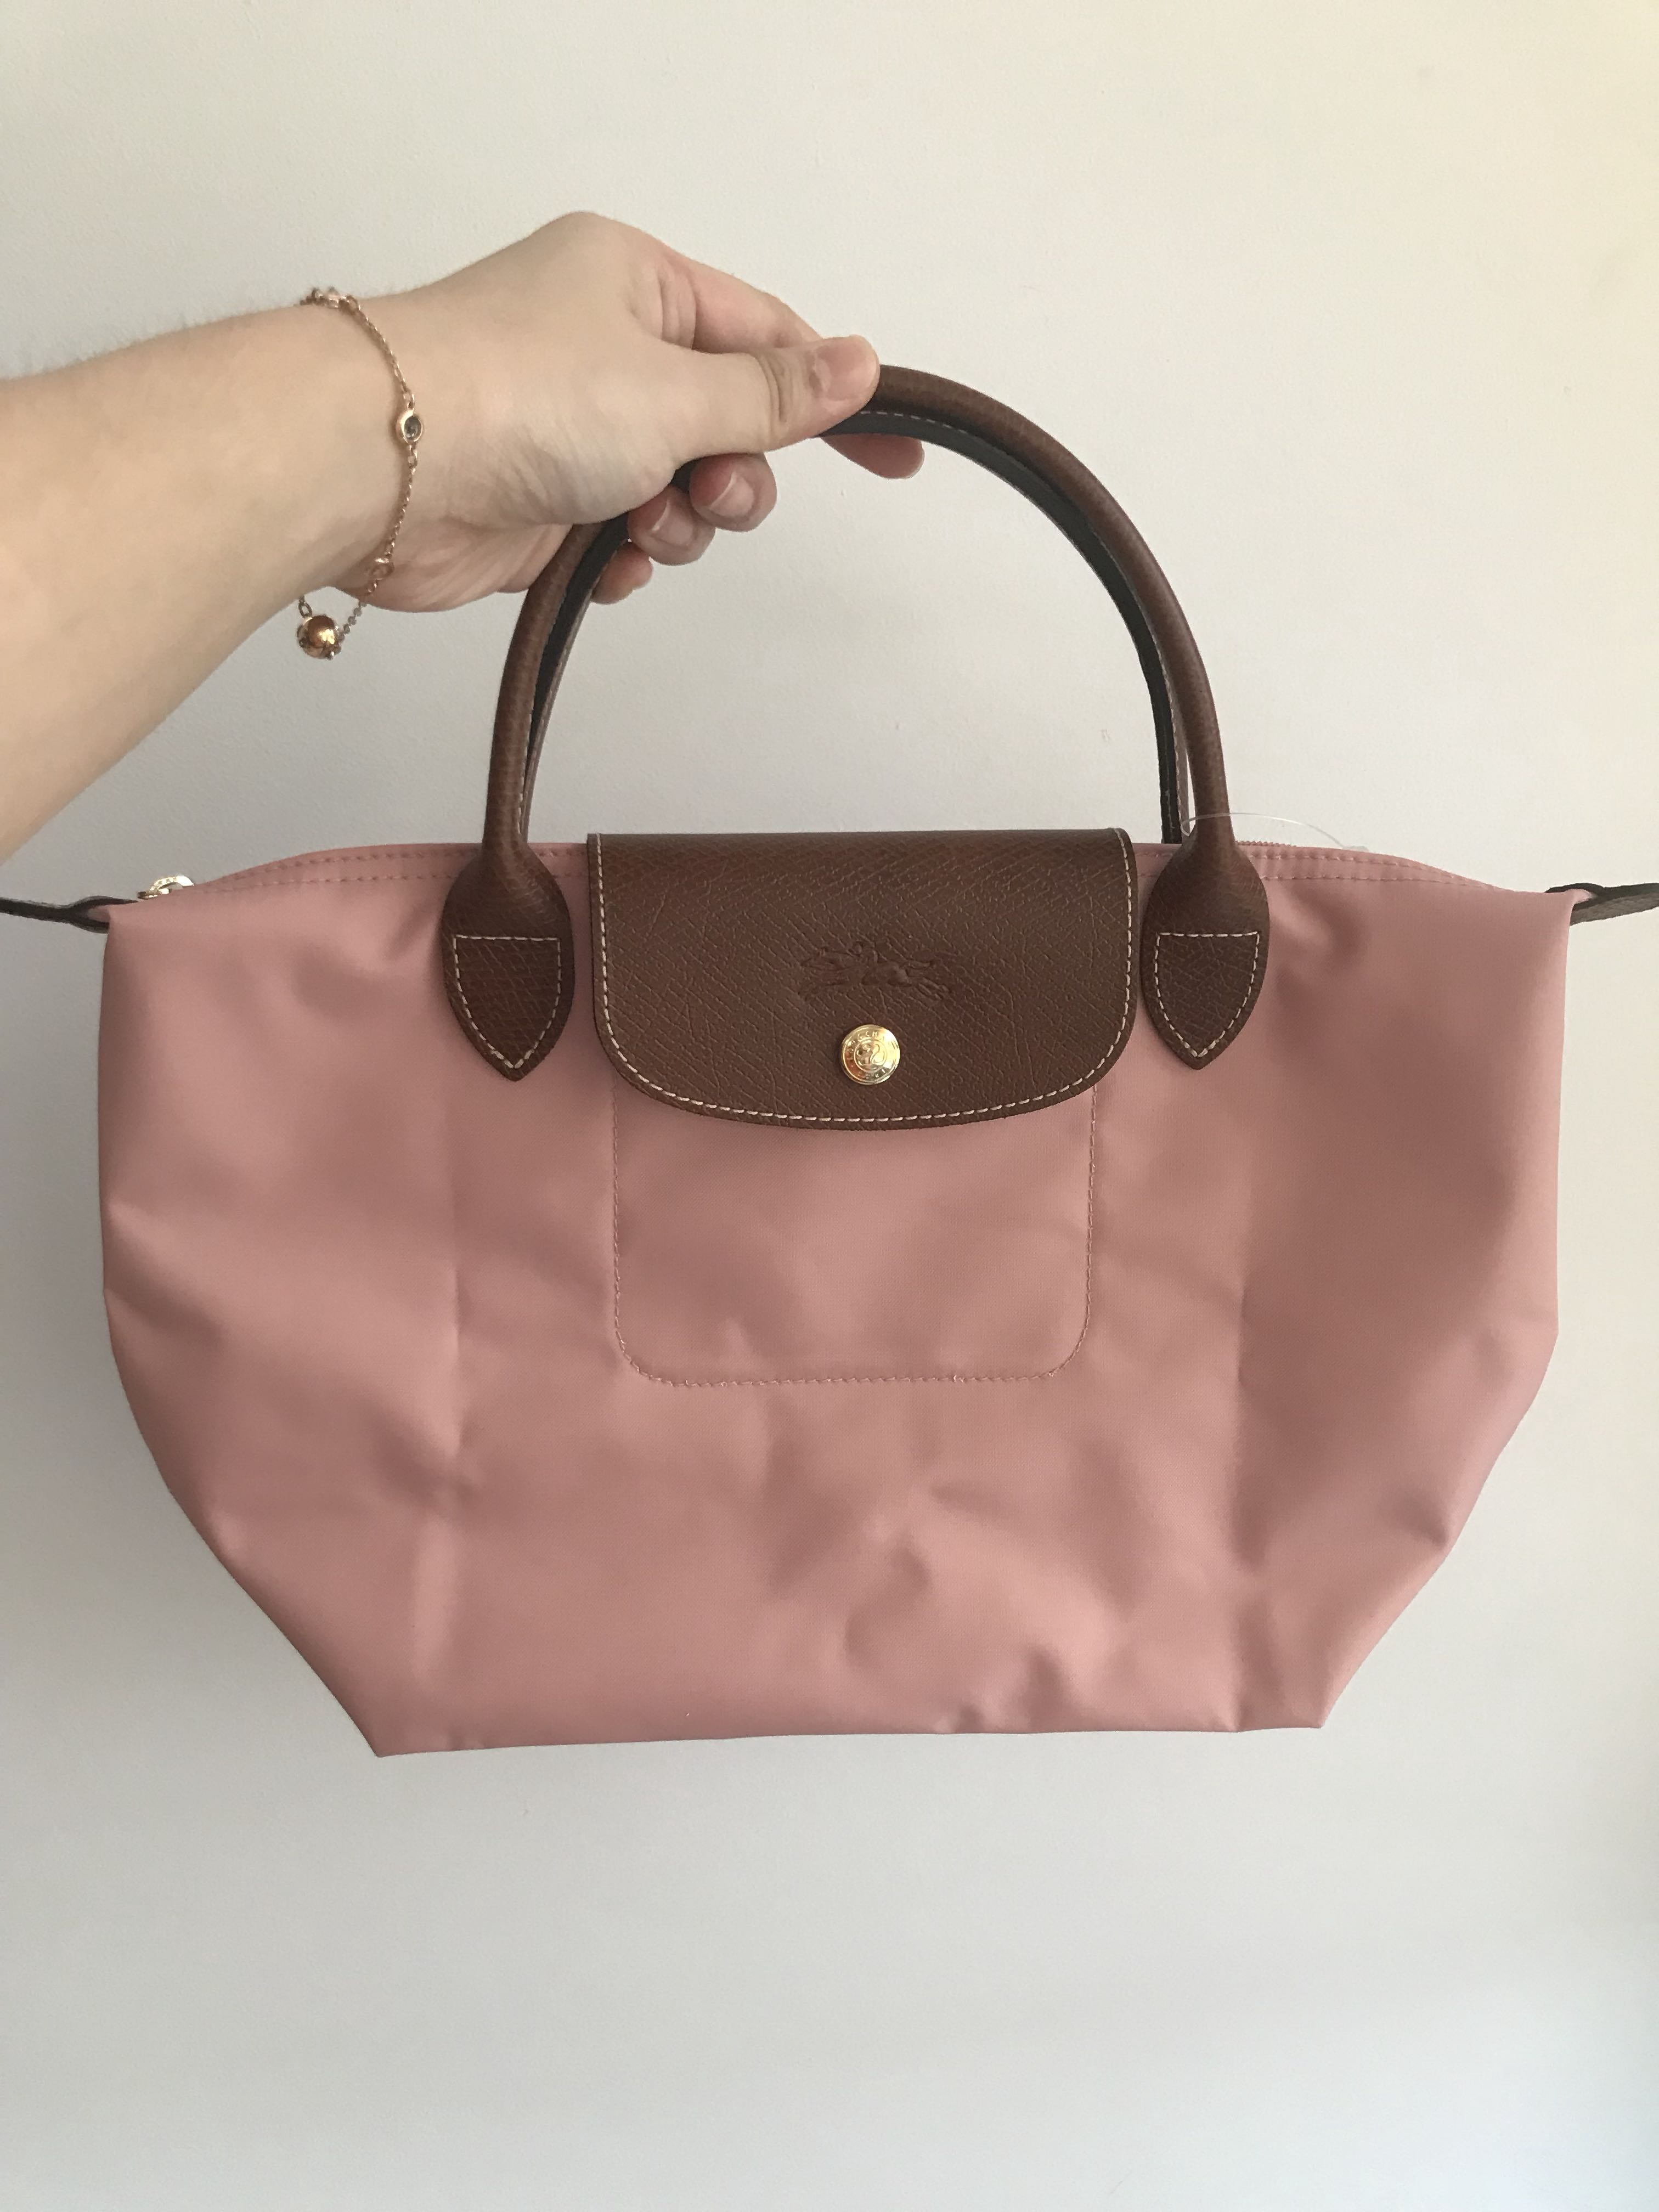 842e468c4d8 Longchamp Pink Le Pliage Small